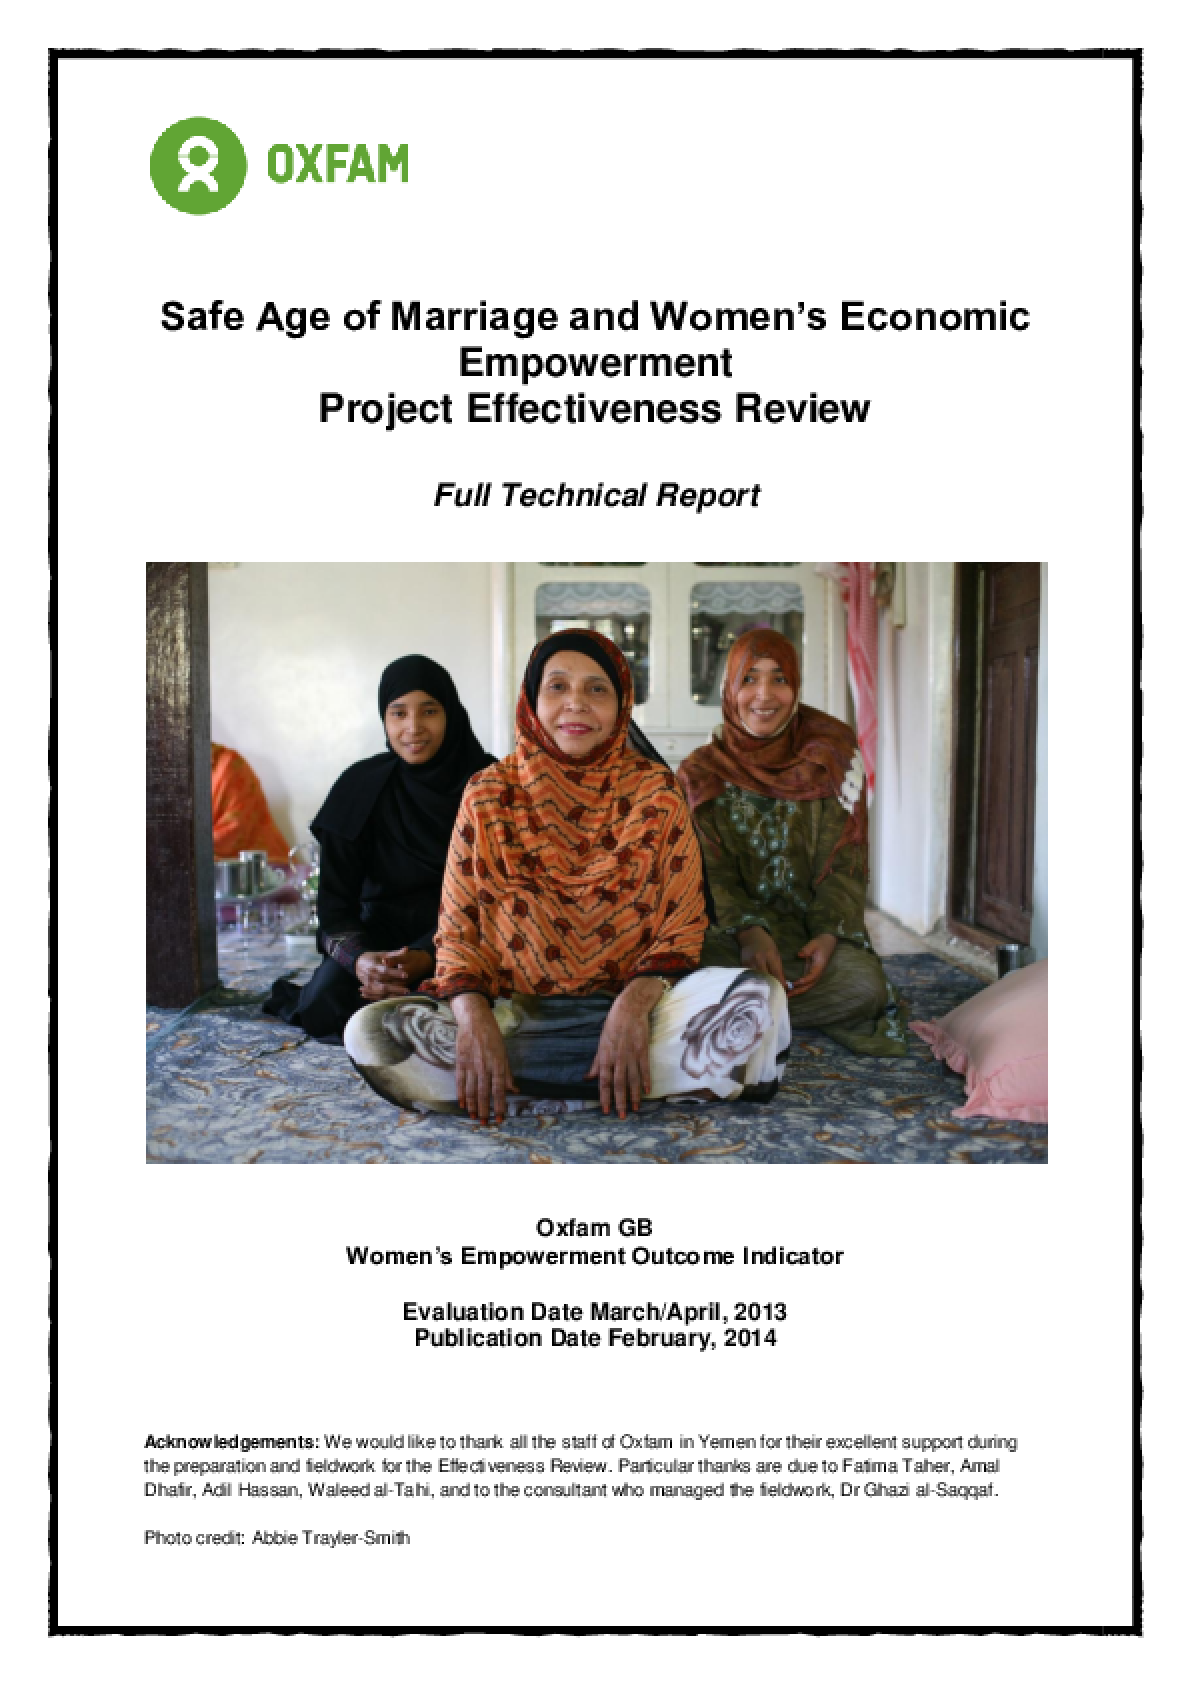 Effectiveness Review: Safe Age of Marriage and Women's Economic Empowerment, Yemen